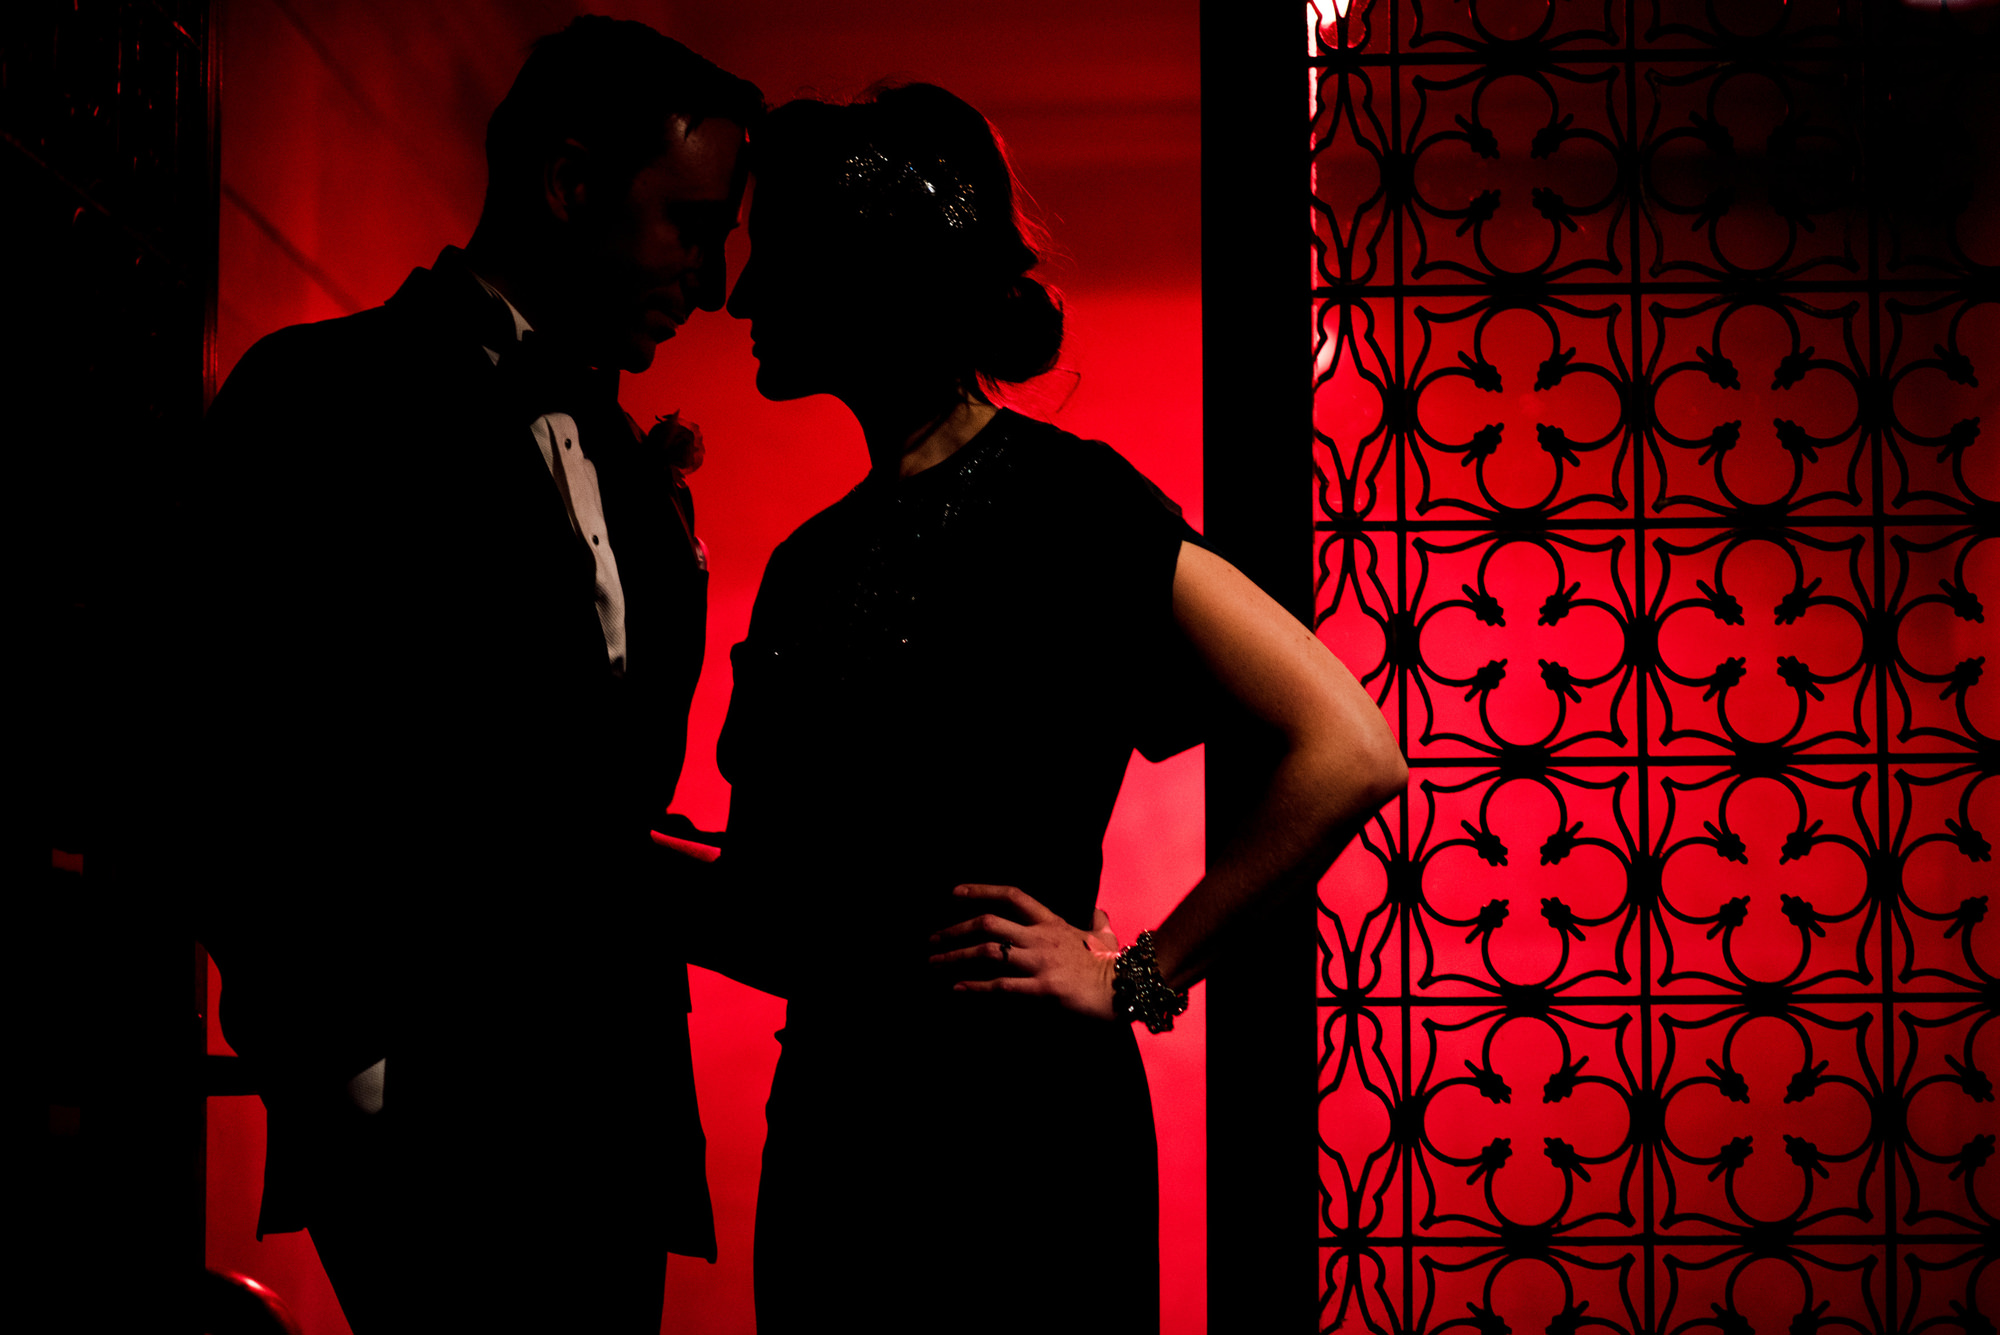 Semi silhouette of bride and groom against red wall, photo by The Brenizers